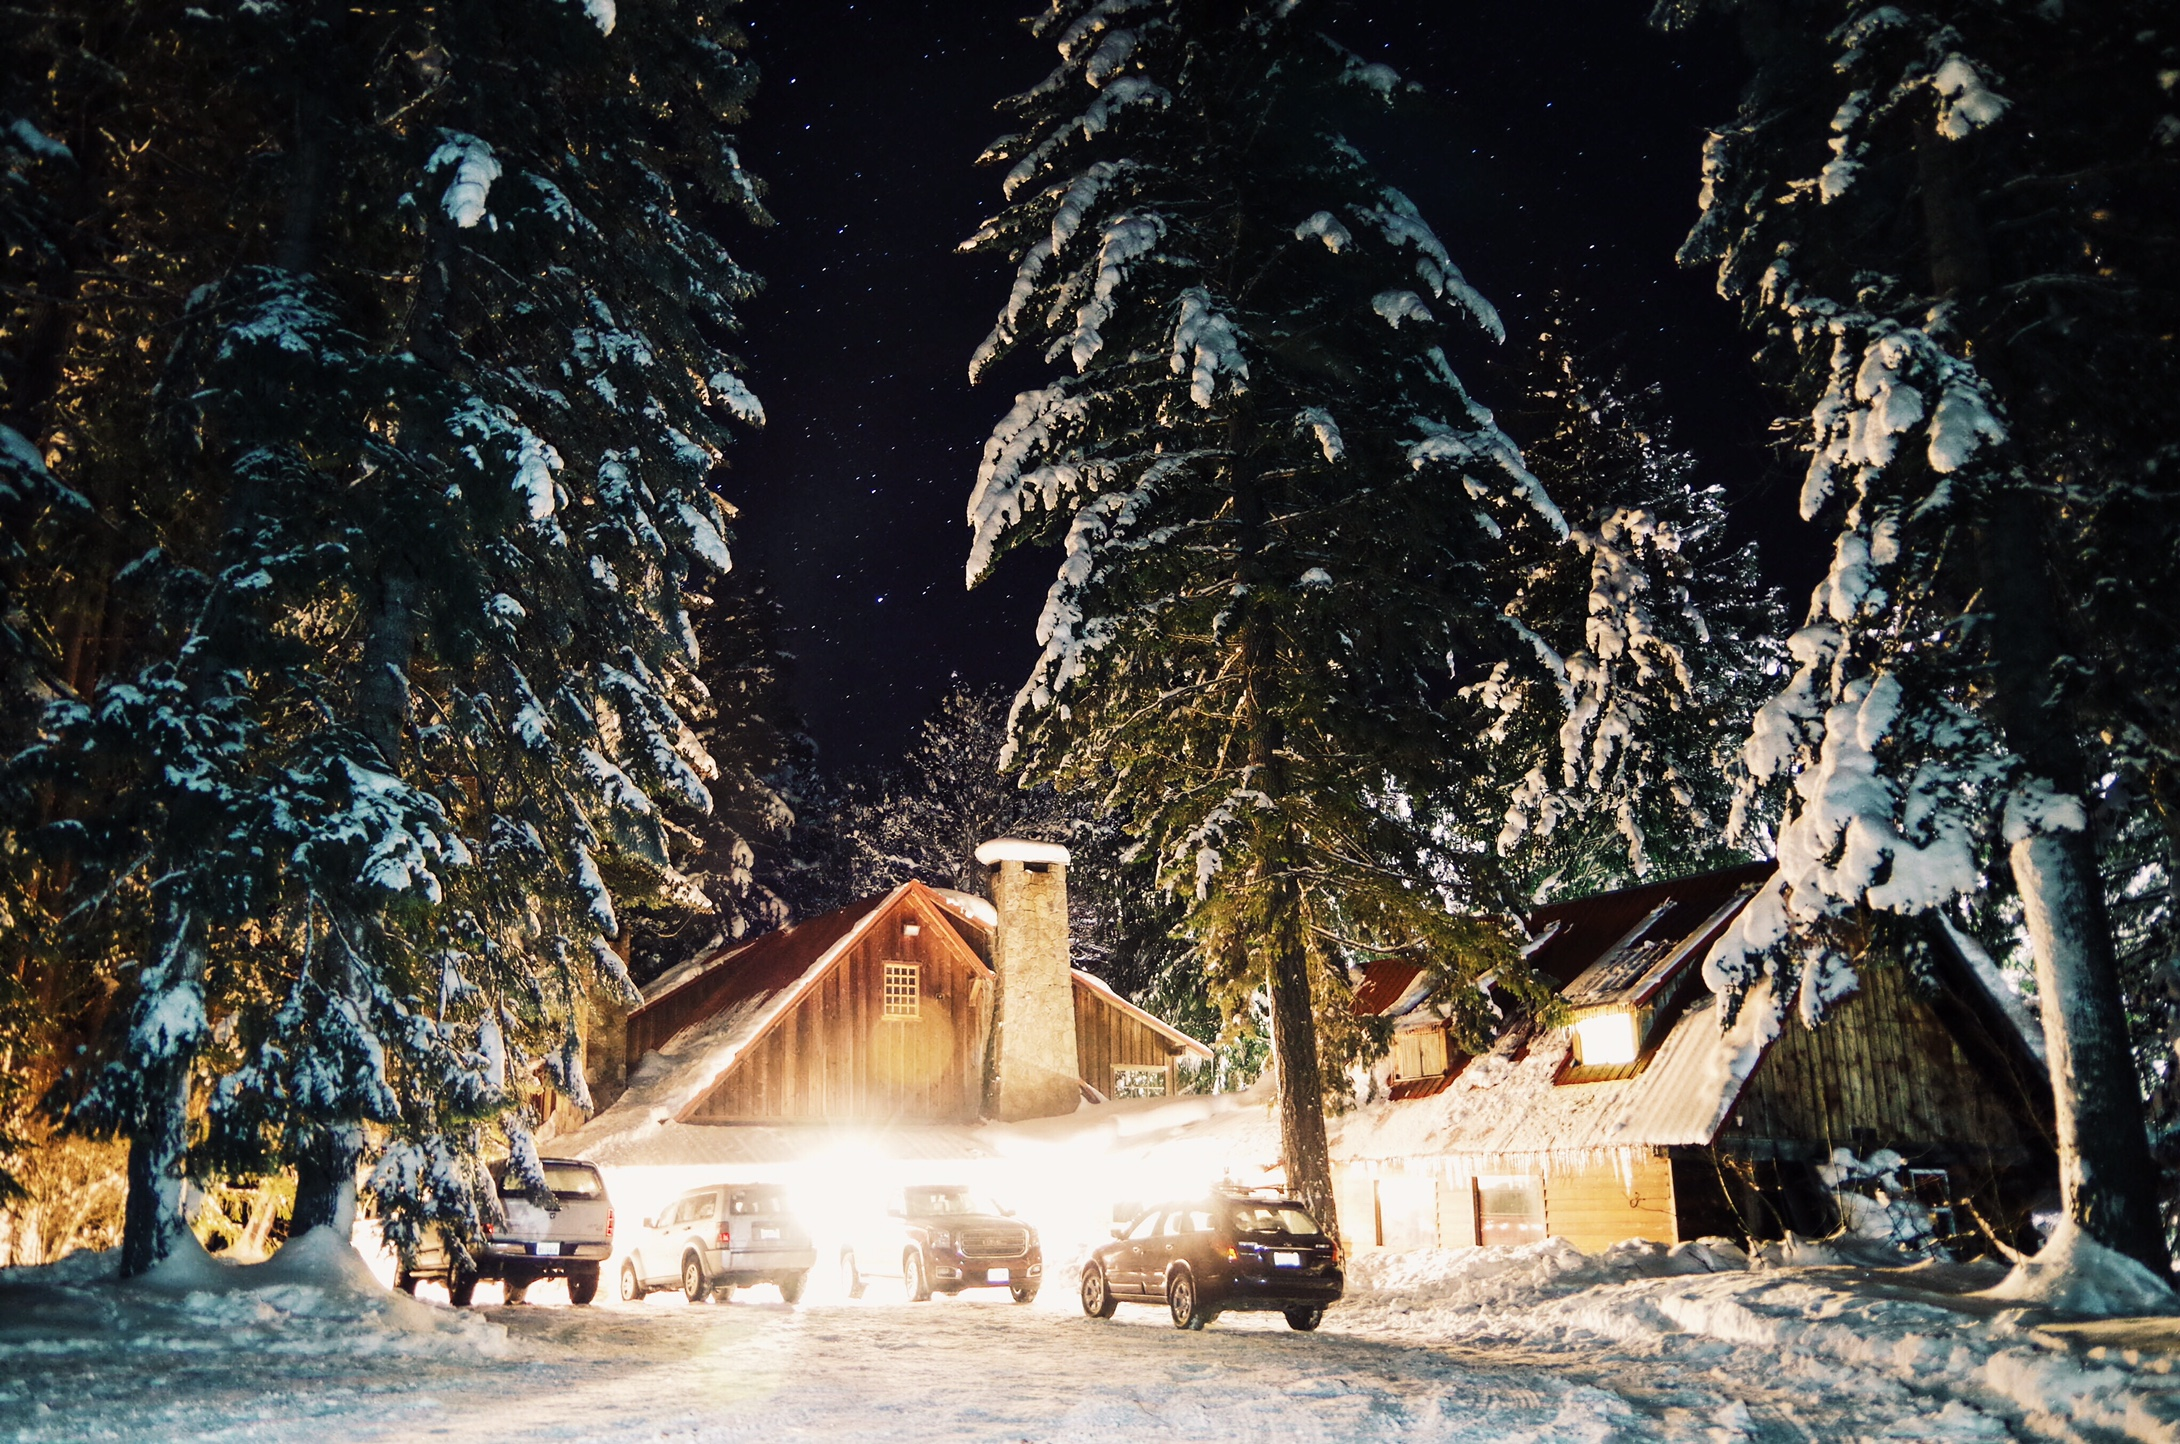 The Dirtyface Lodge Is A Spacious And Inviting Mountain Retreat Located In Lake  Wenatchee, Just Outside Of Leavenworth, Washington.